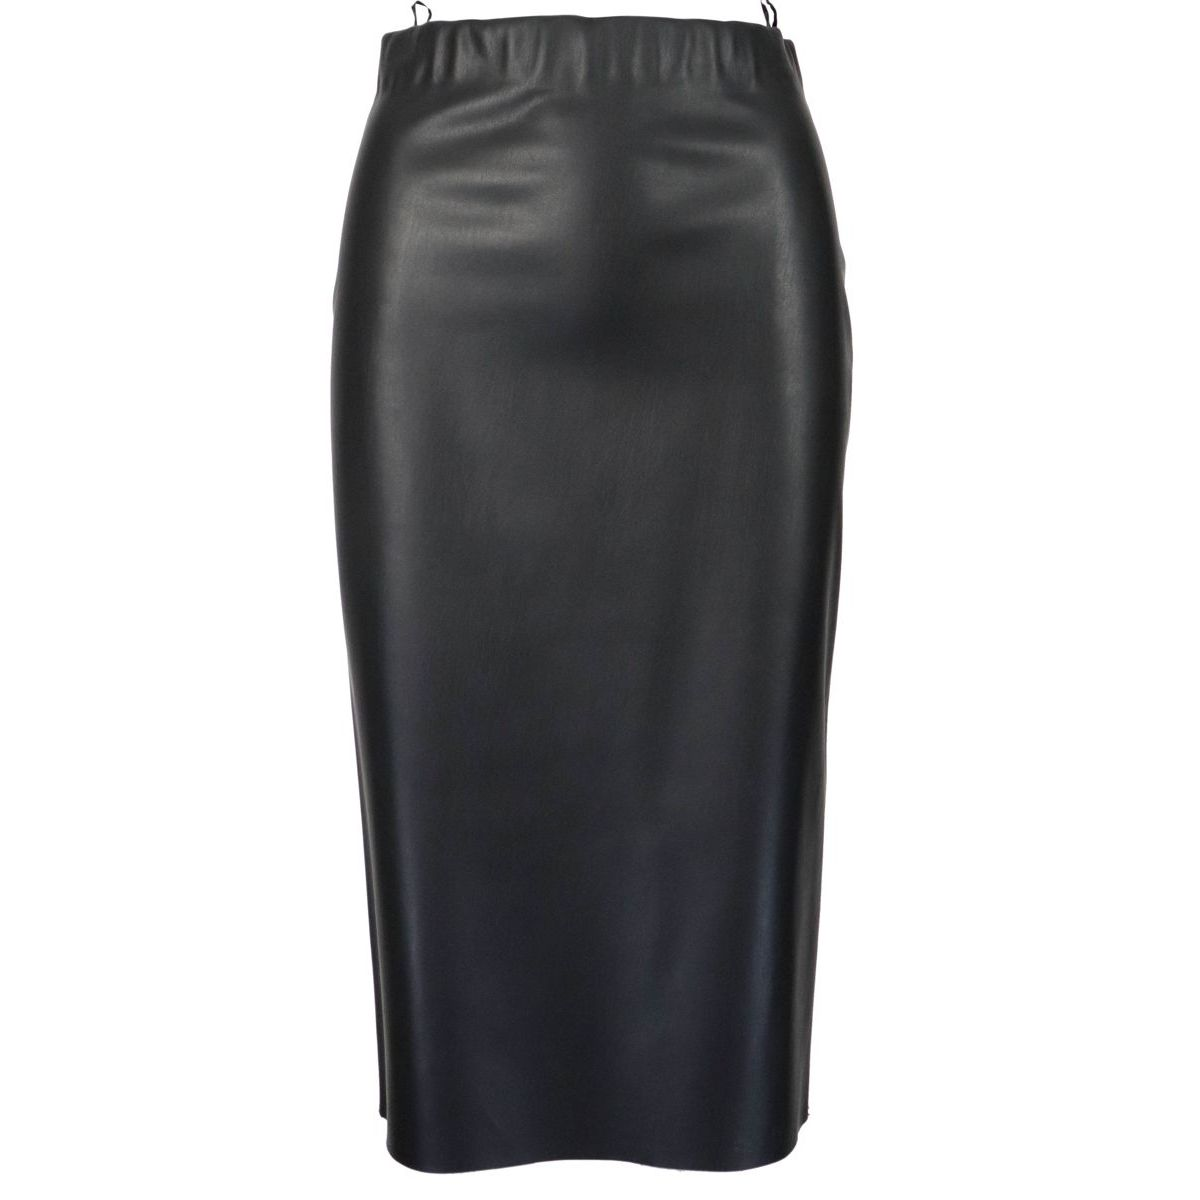 Frog pencil skirt in synthetic leather Black S MAX MARA